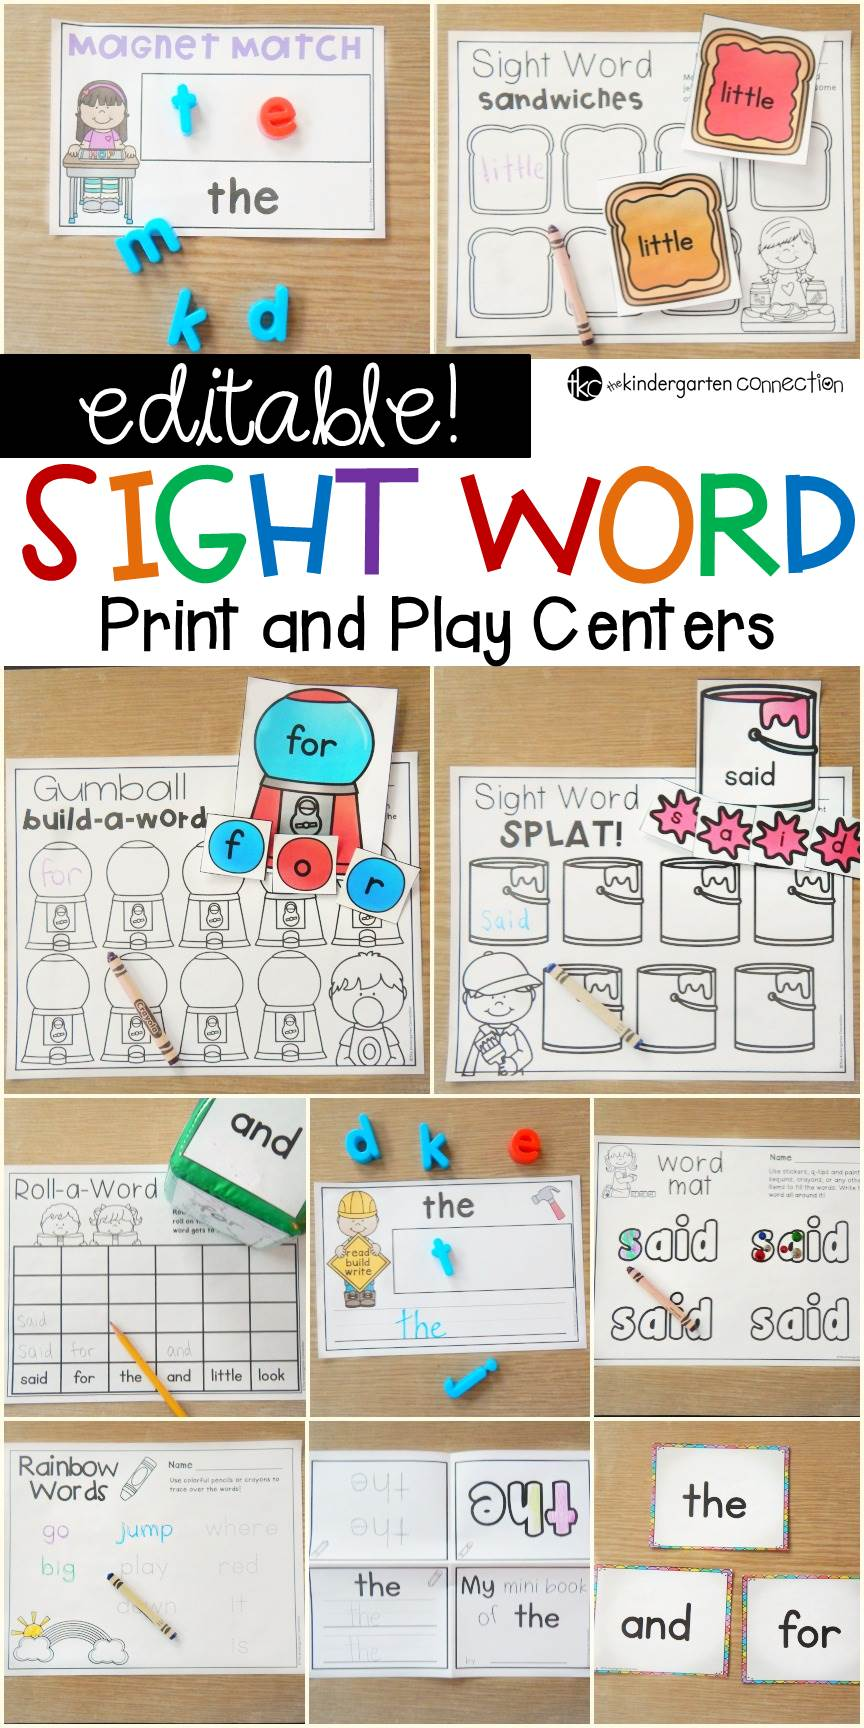 Editable Sight Word Centers and Activities - The ...